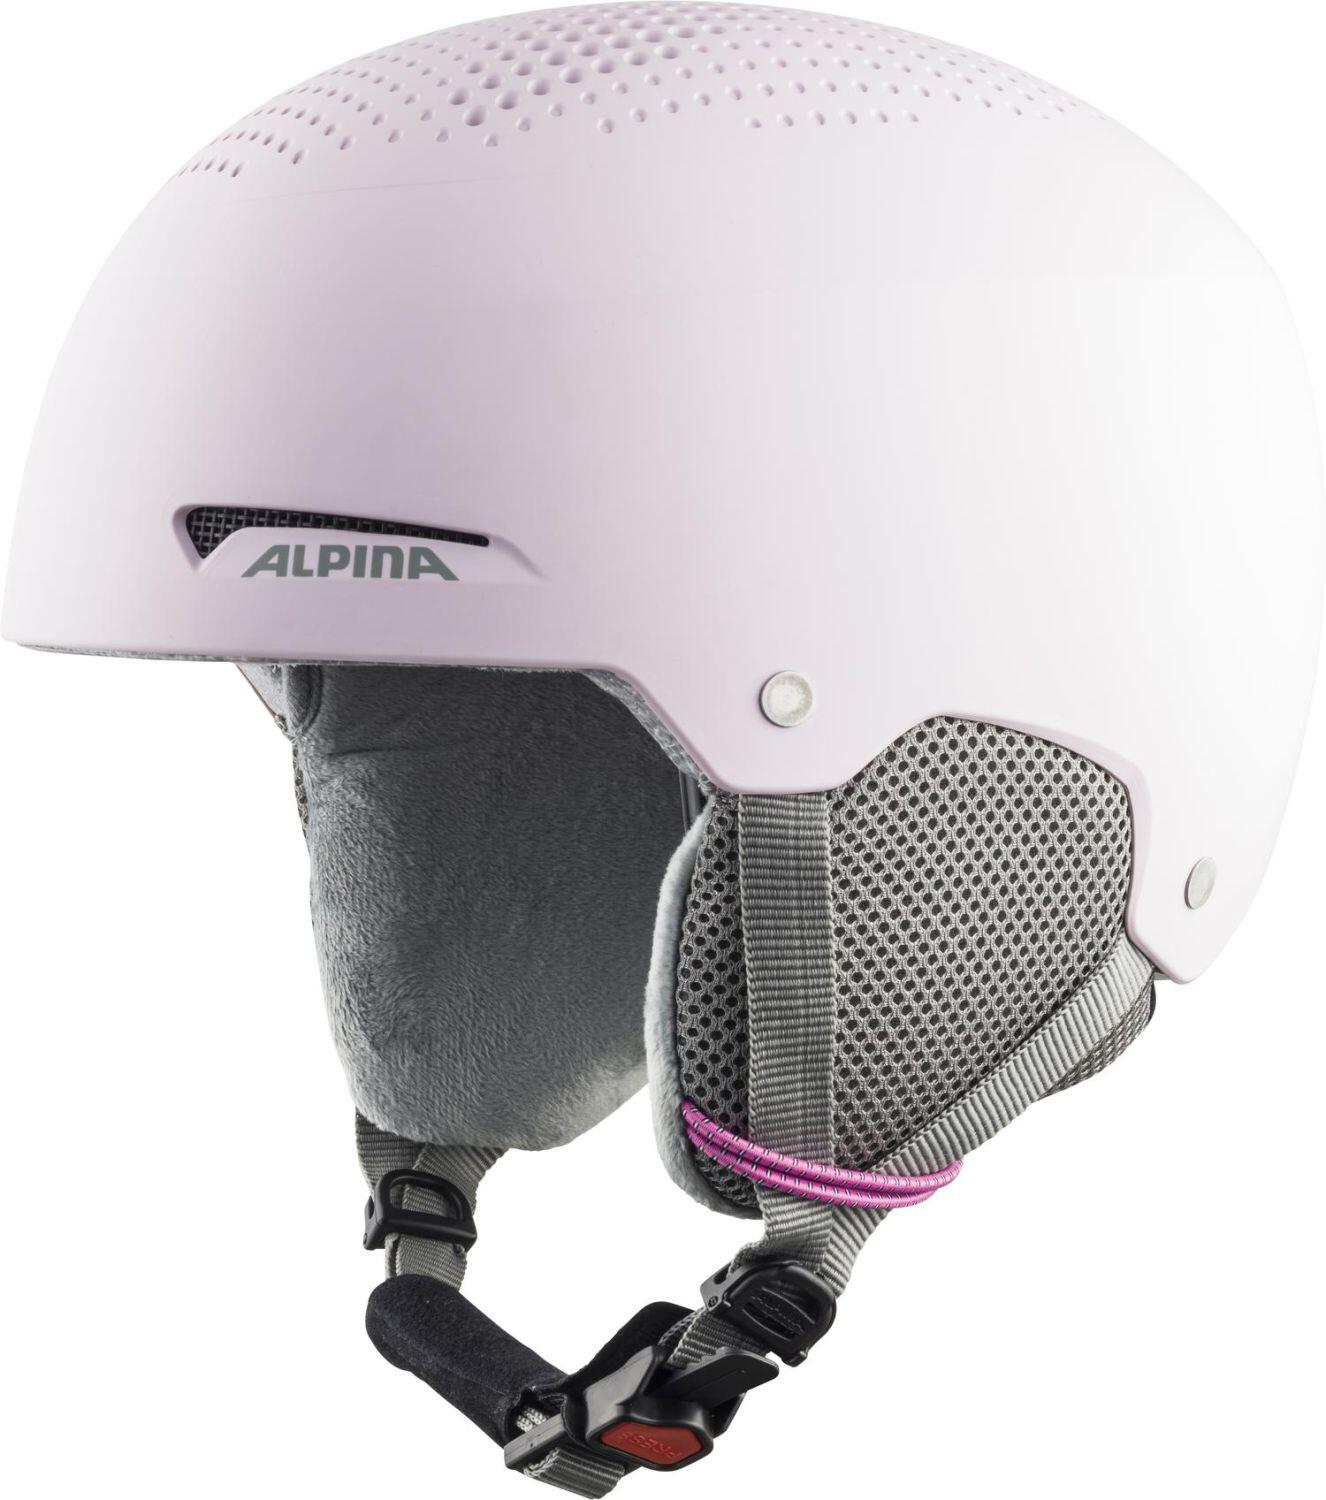 Fürski - Alpina Zupo Kinder Skihelm (Größe 46 48 cm, 60 light rose matt) - Onlineshop